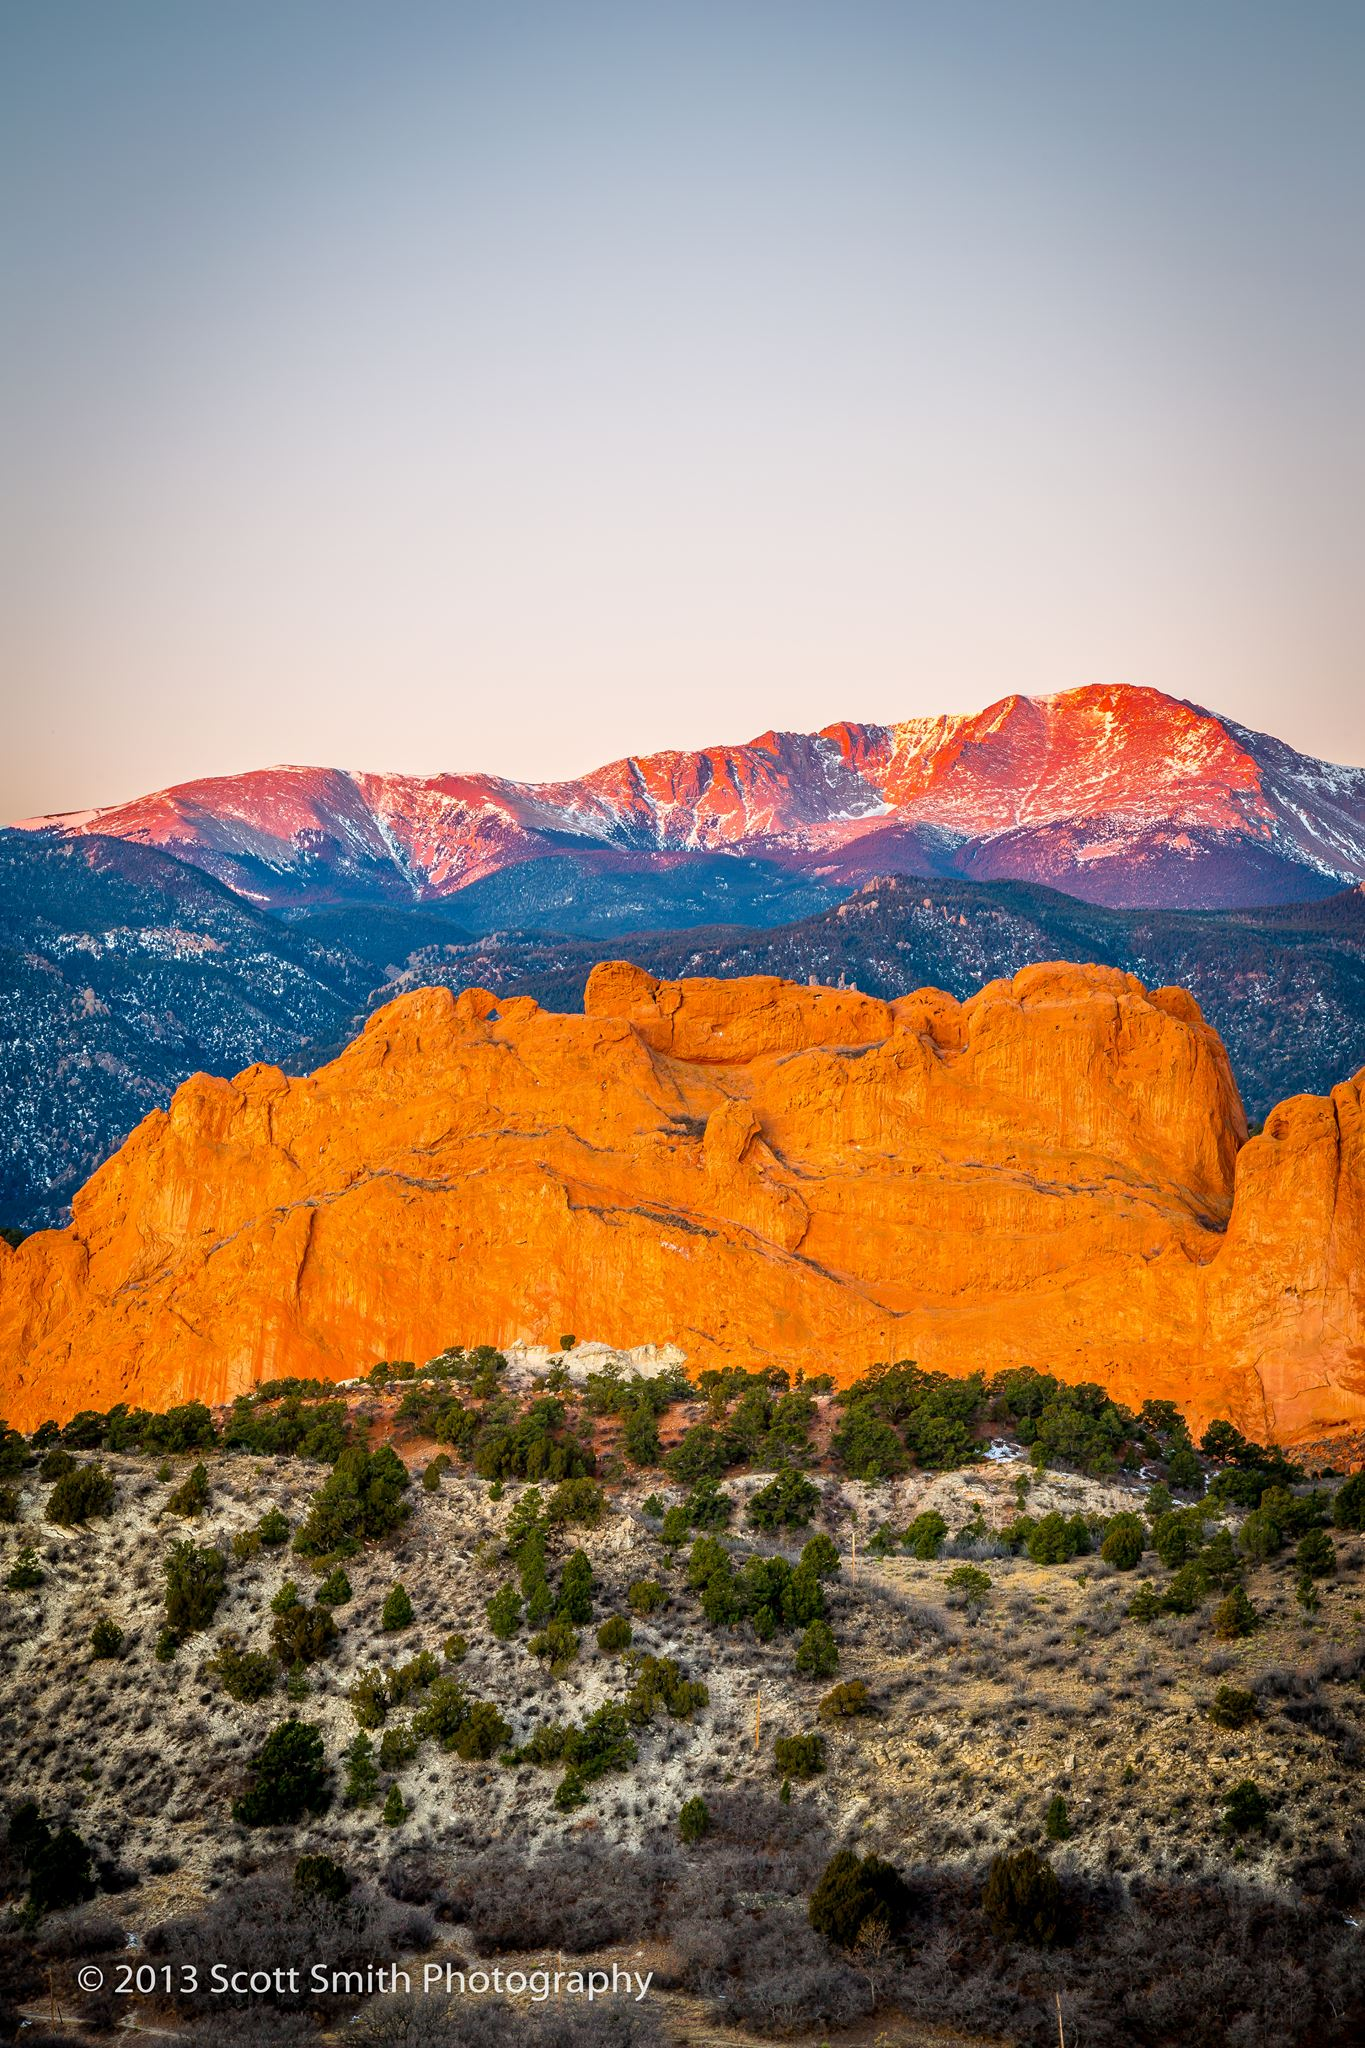 Morning Peaks - Pike's Peak, behind the Garden of the Gods, lit by the rising sun. by D Scott Smith